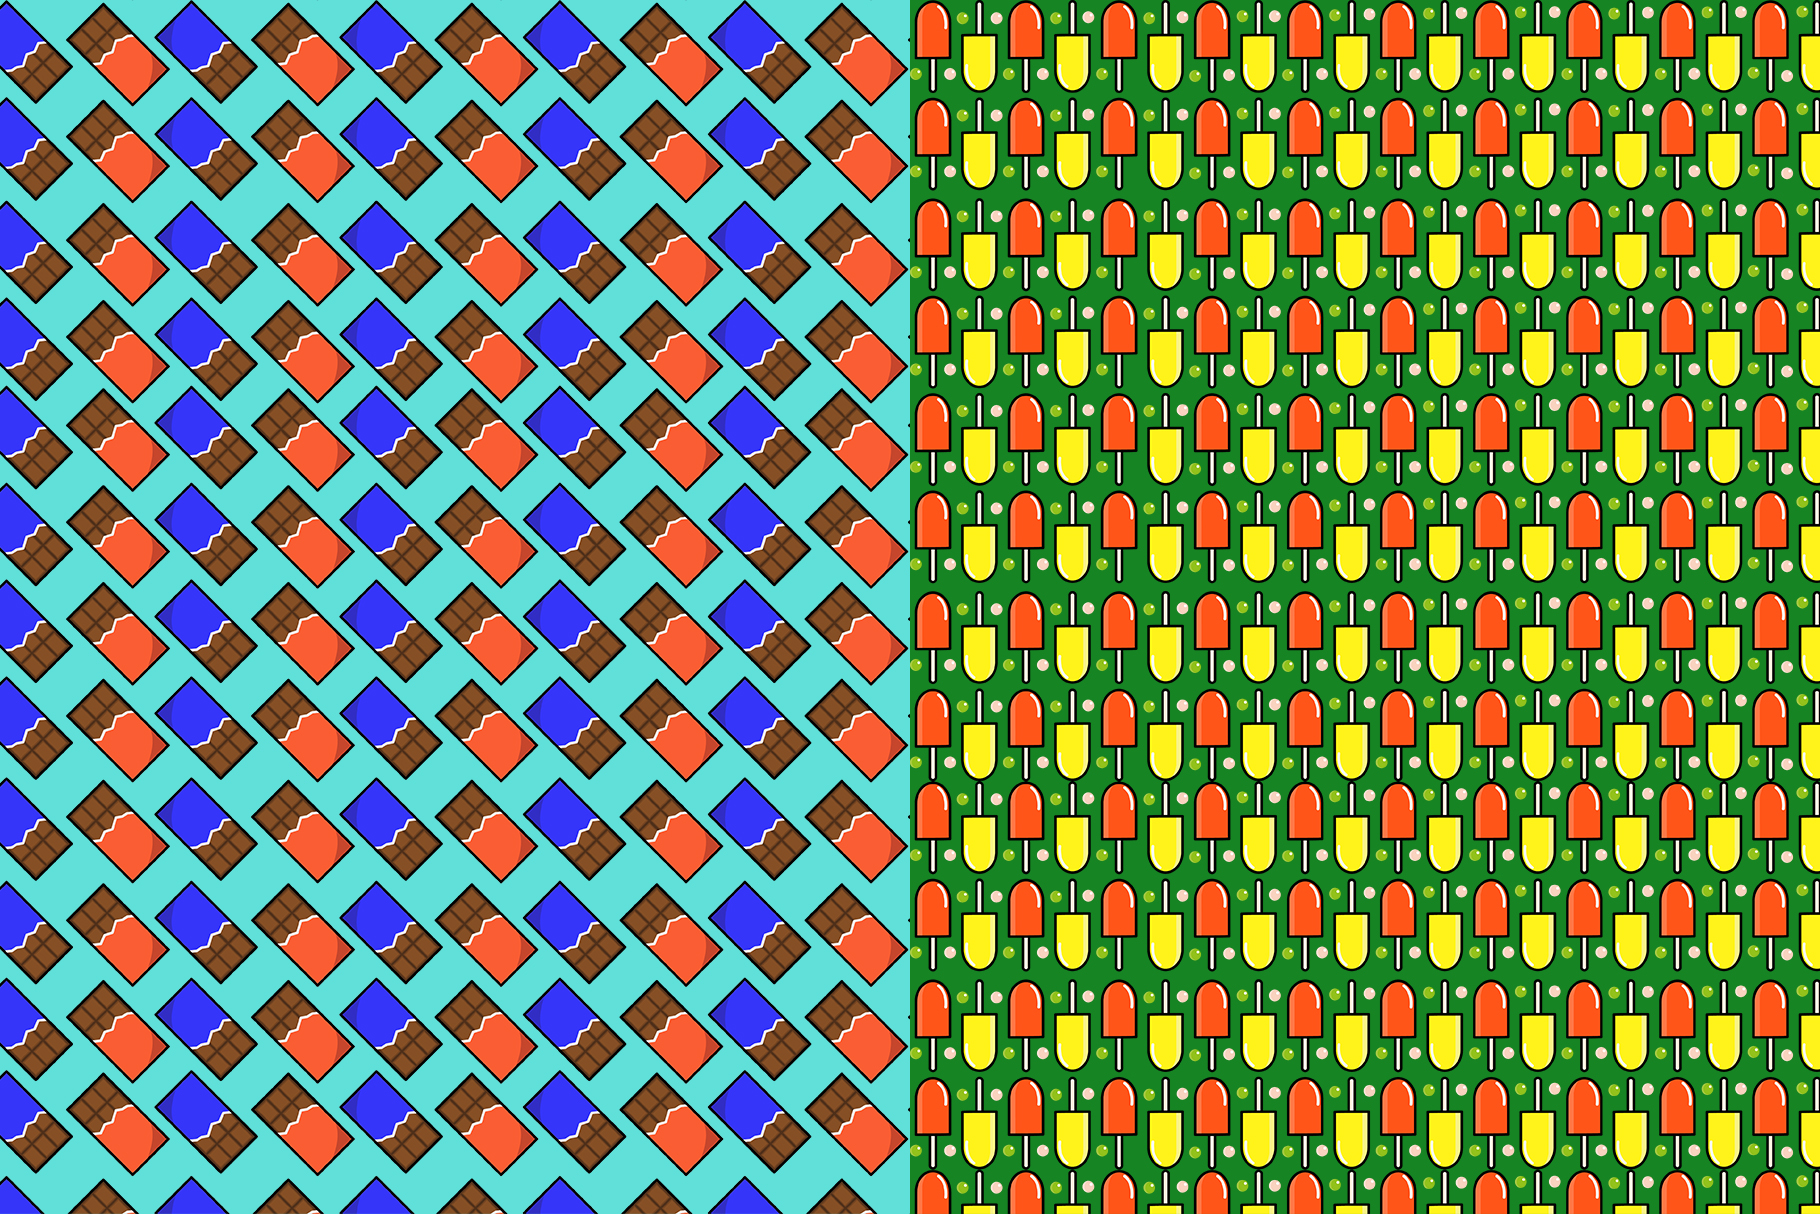 10 Sweets Seamless Patterns example image 6